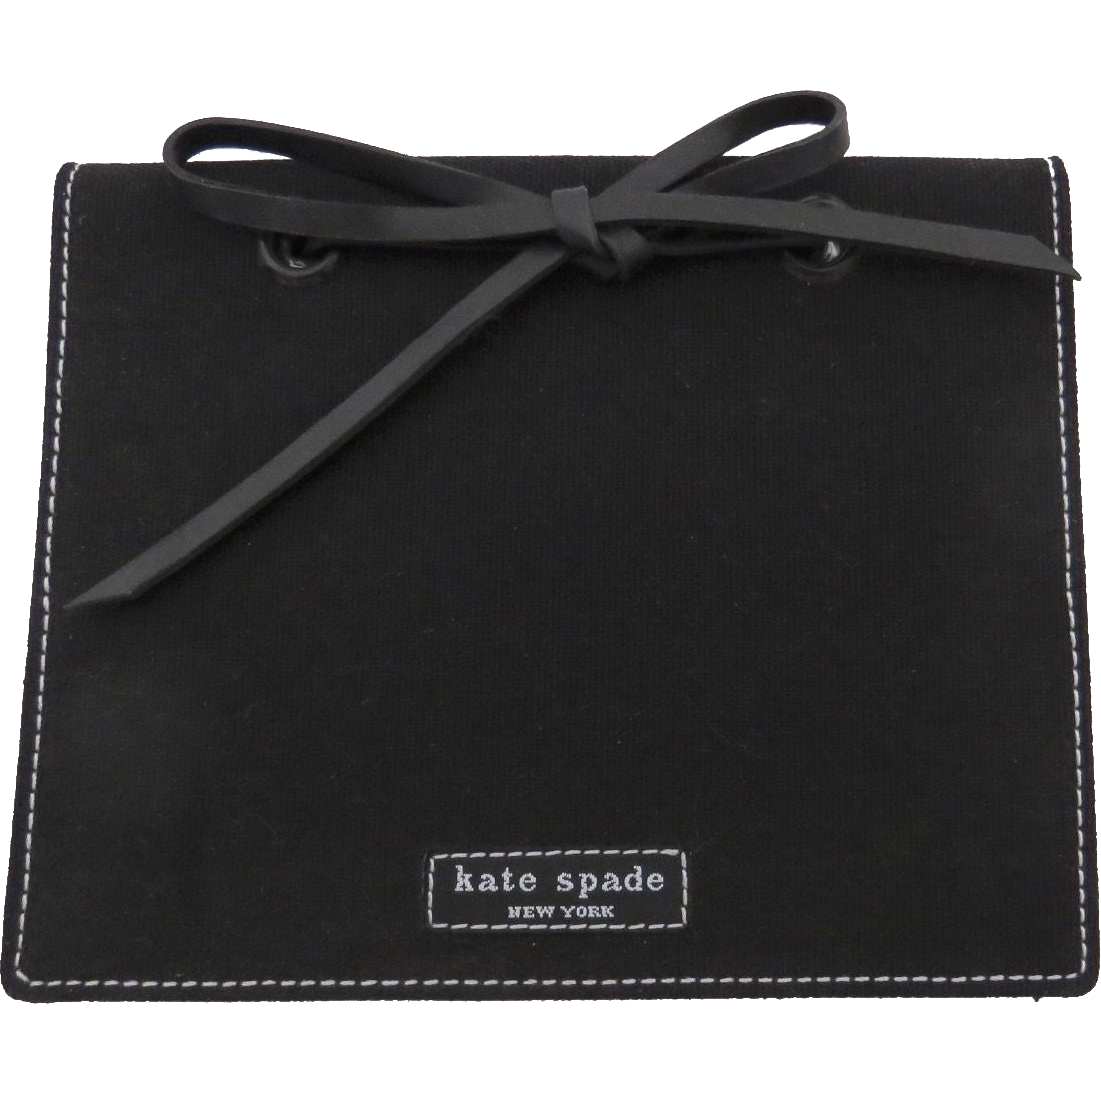 Kate Spade Black Small Photo Album Book with Leather Tie